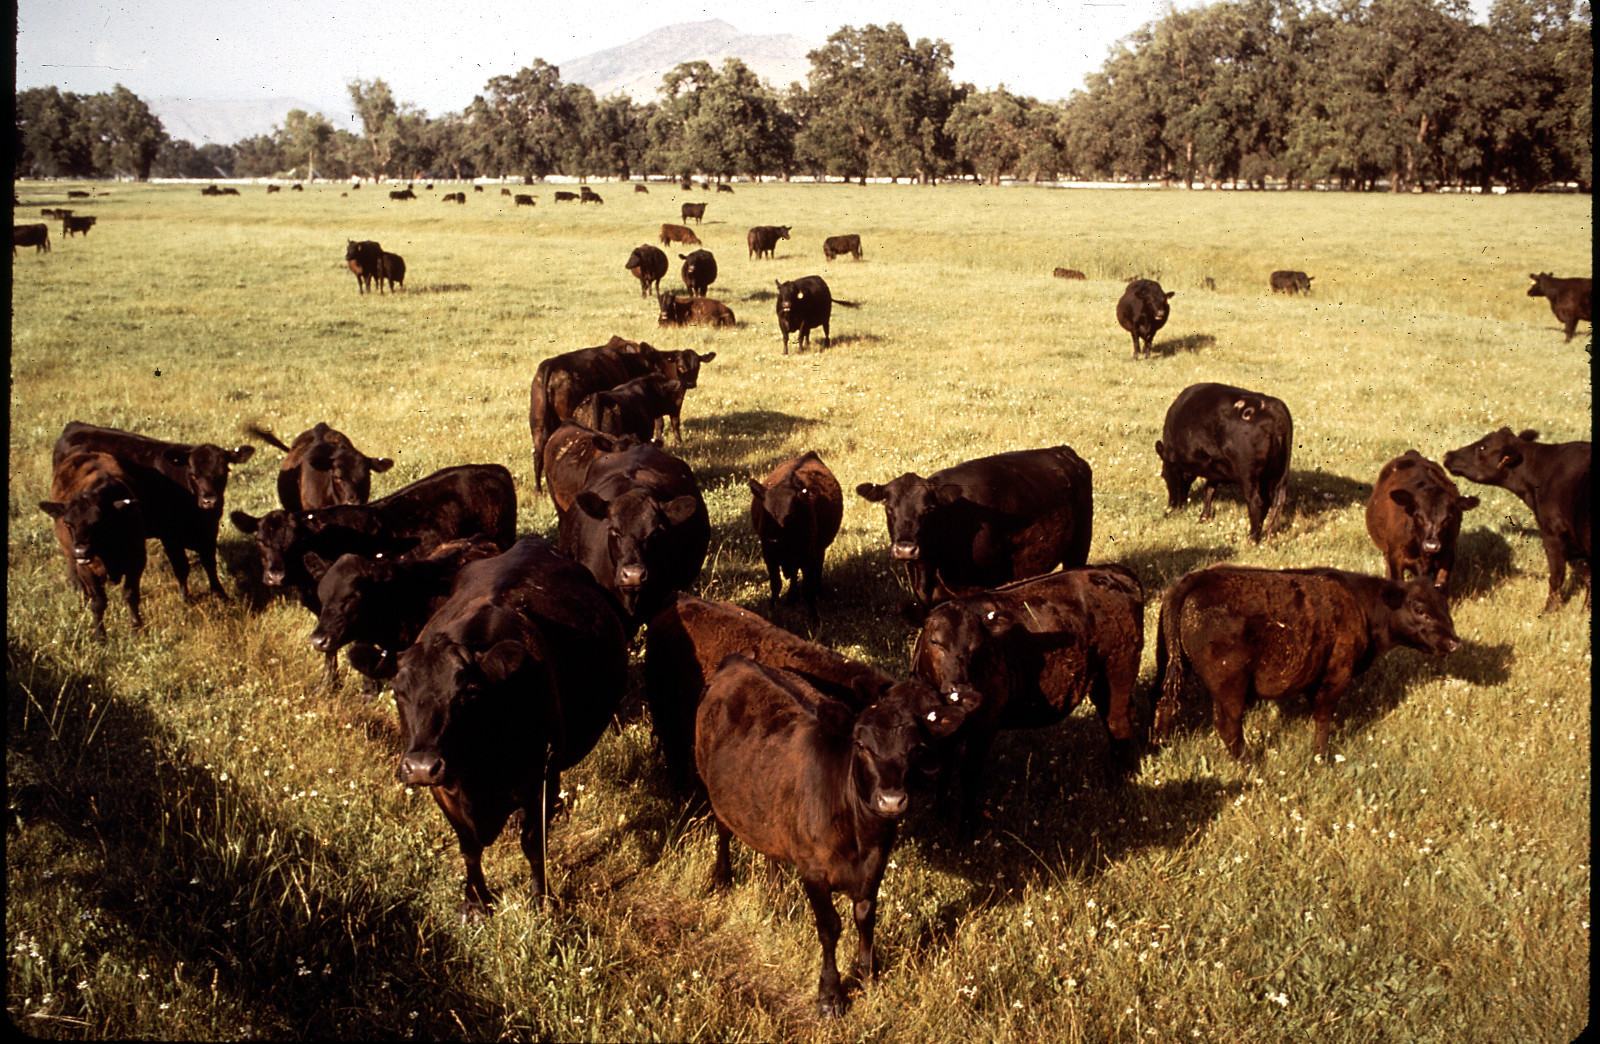 How Much of America's Land is Used for Cattle-Grazing? And Why is That Bad?